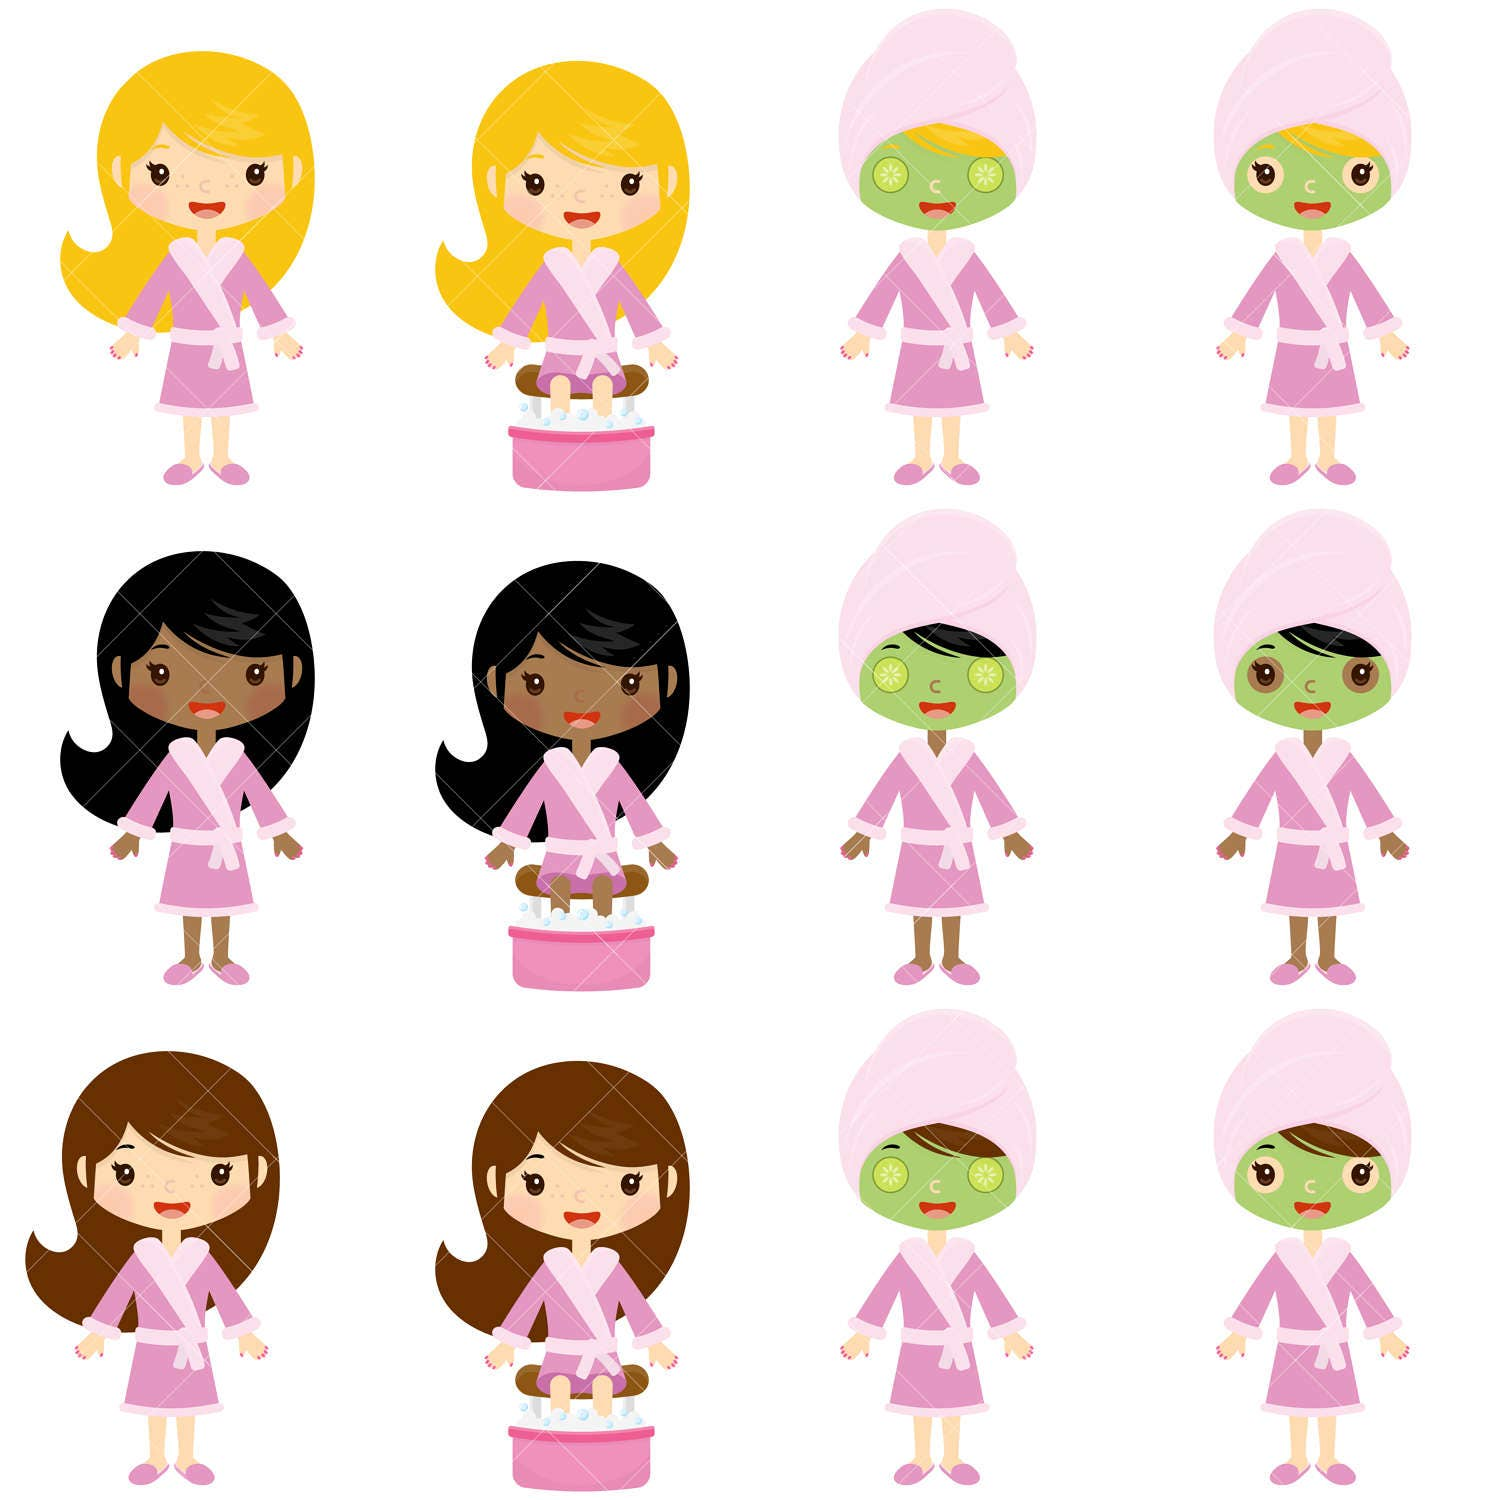 spa girls clipart spa party clip art from clipartisan on etsy studio rh etsystudio com spa clipart free spa clip art free images